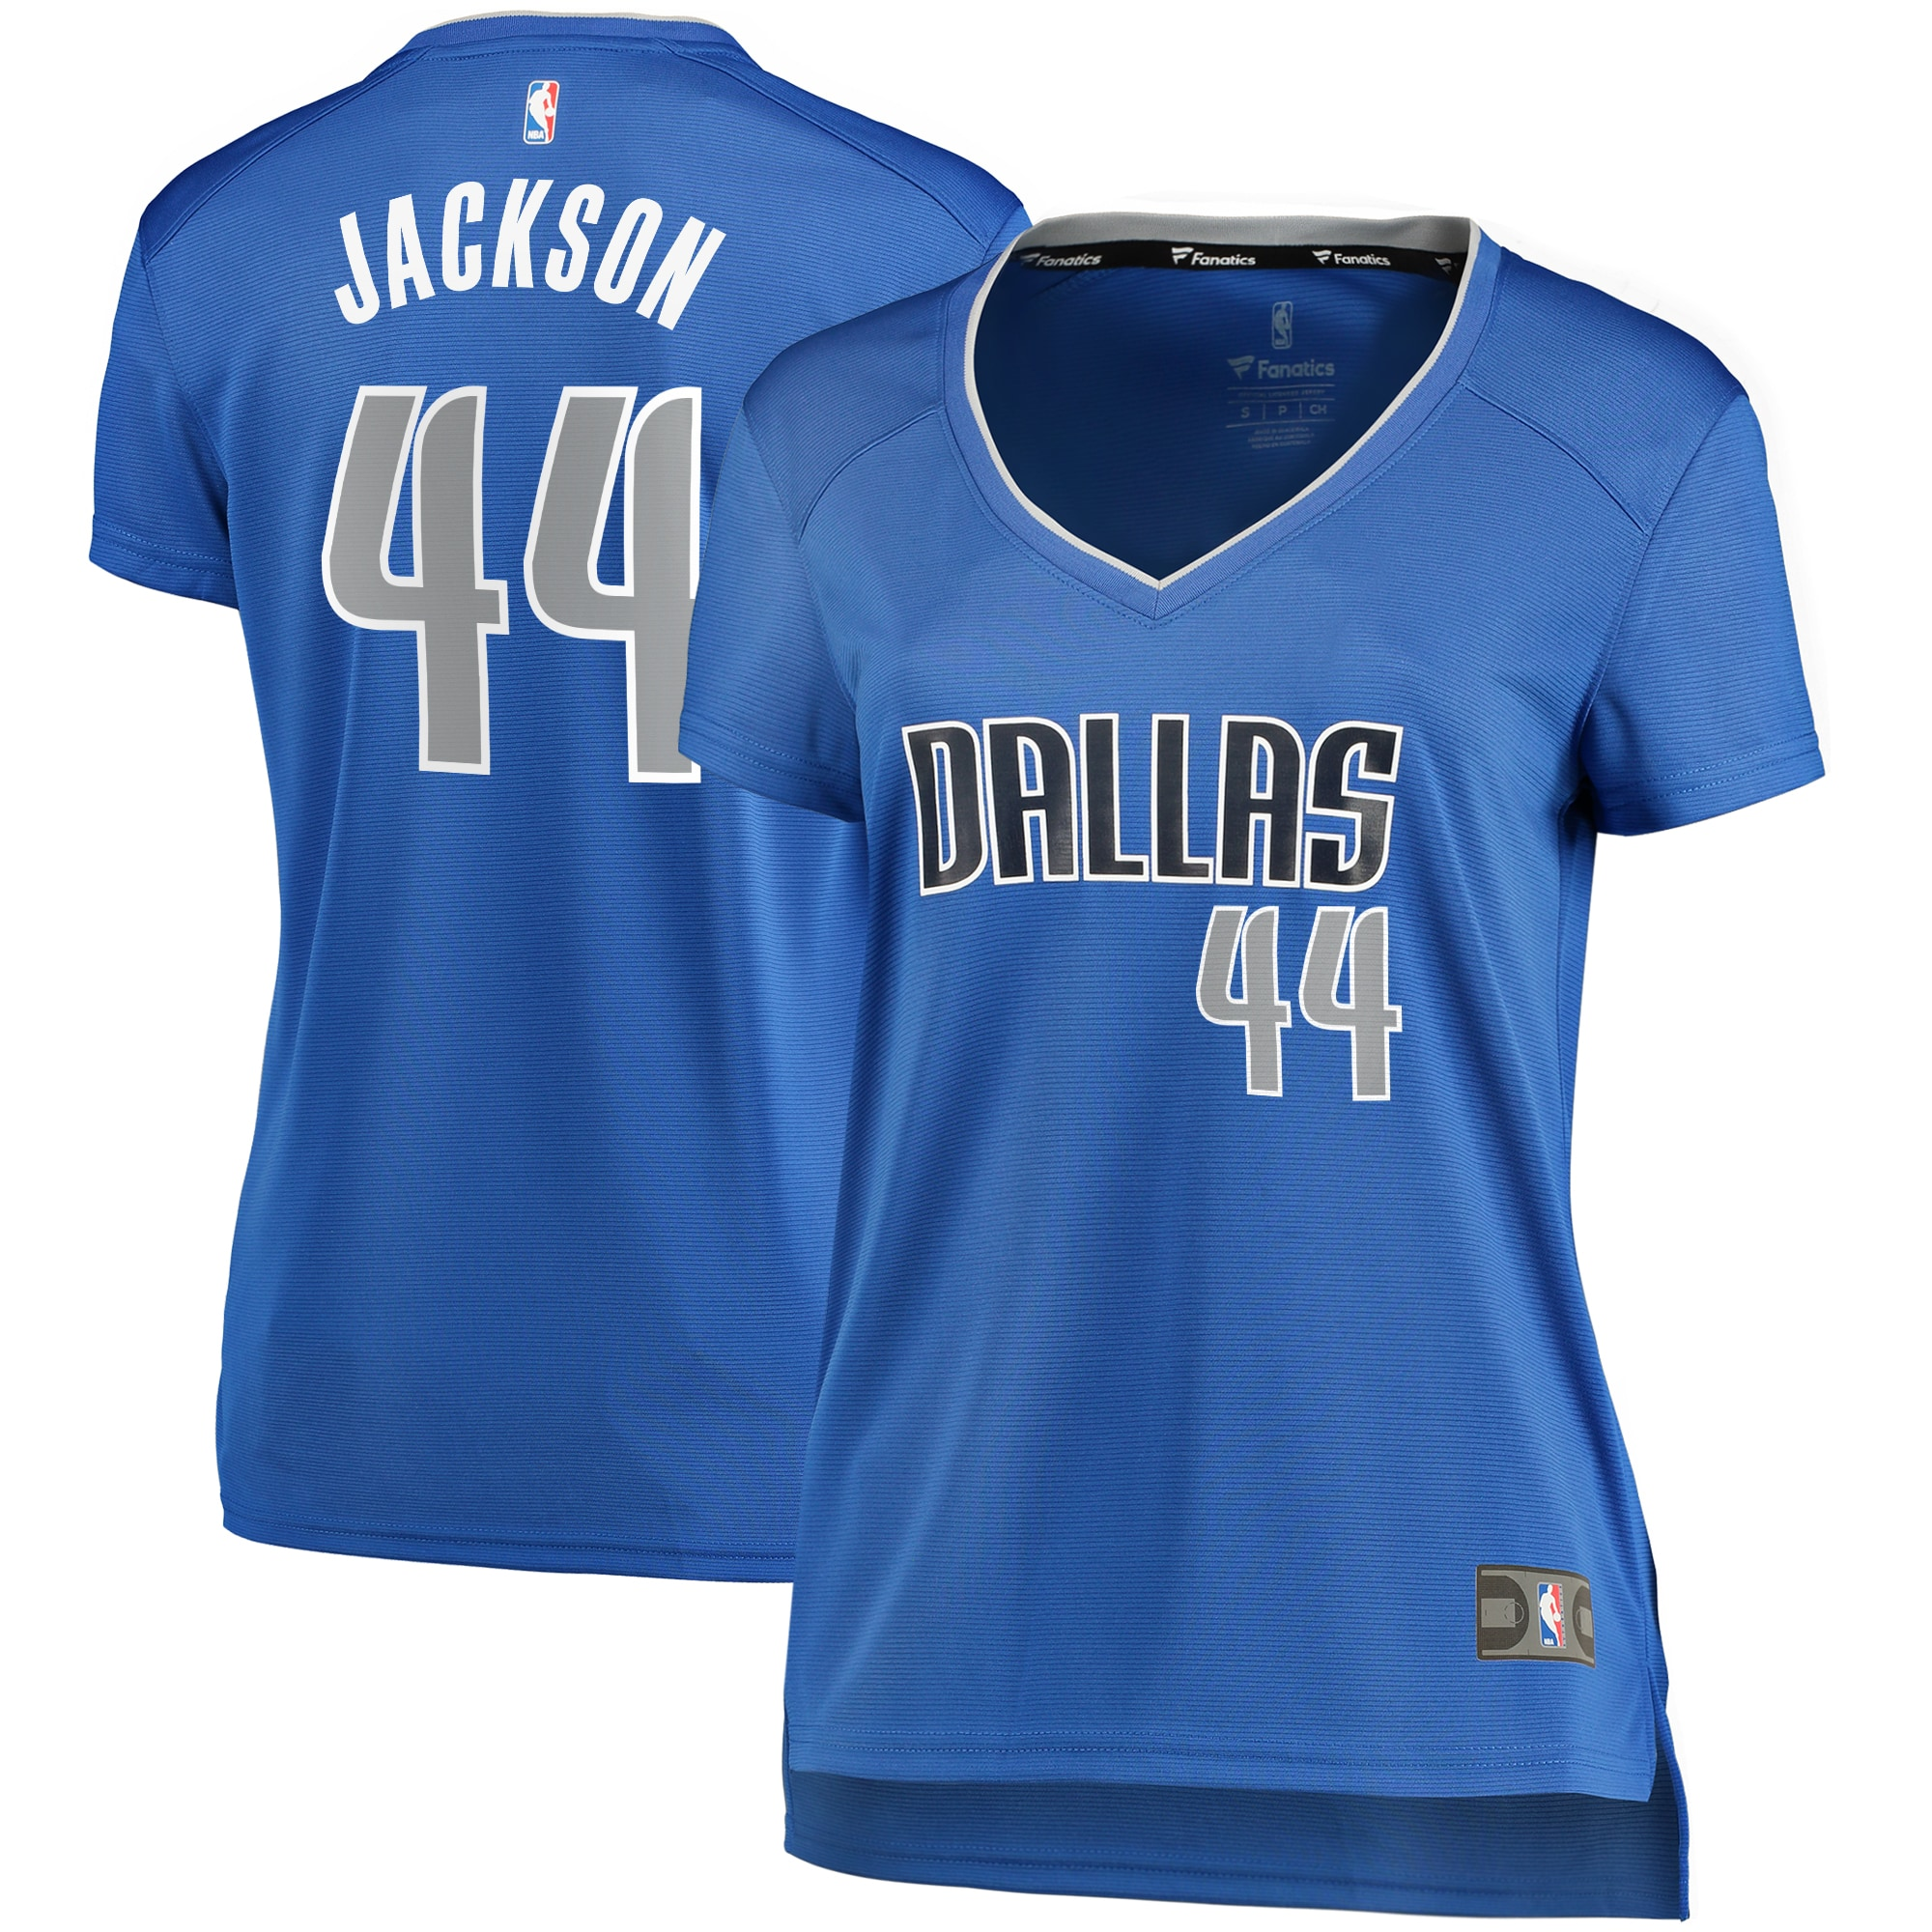 Justin Jackson Dallas Mavericks Fanatics Branded Women's Fast Break Player Replica Jersey - Icon Edition - Blue